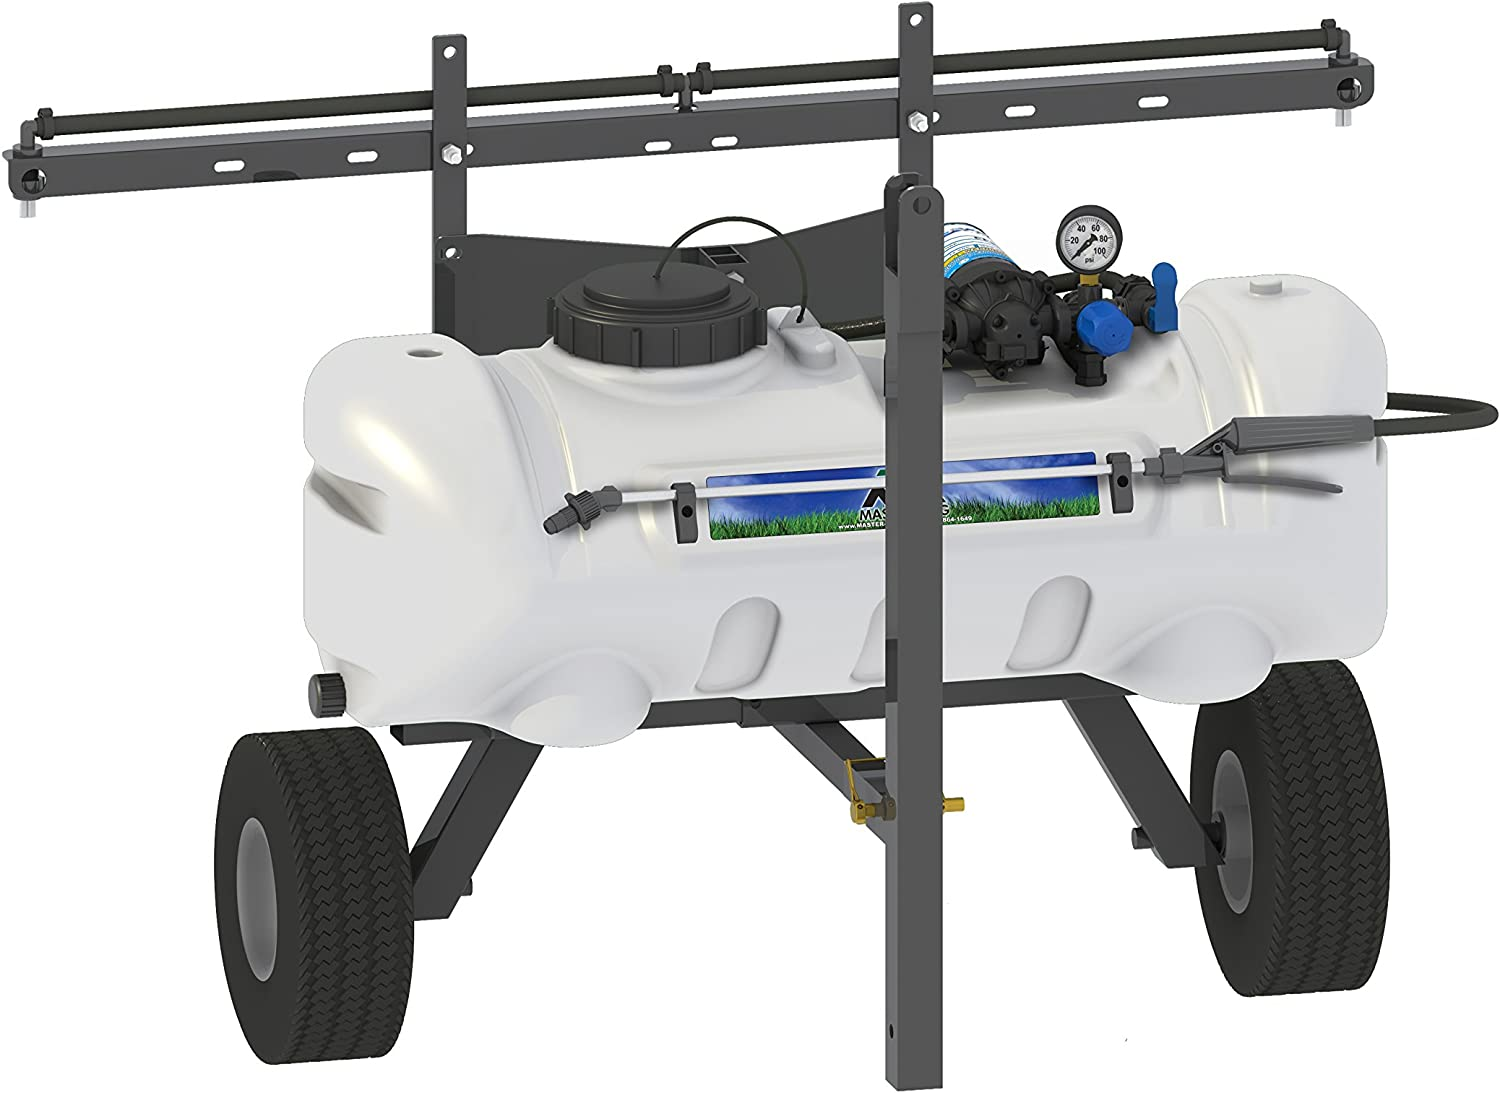 Master Manufacturing SNO-11-015A-MM 15 Gallon Trailer Broadcast & Spot Sprayer-Everflo 2.2GPM, 7 Foot Coverage